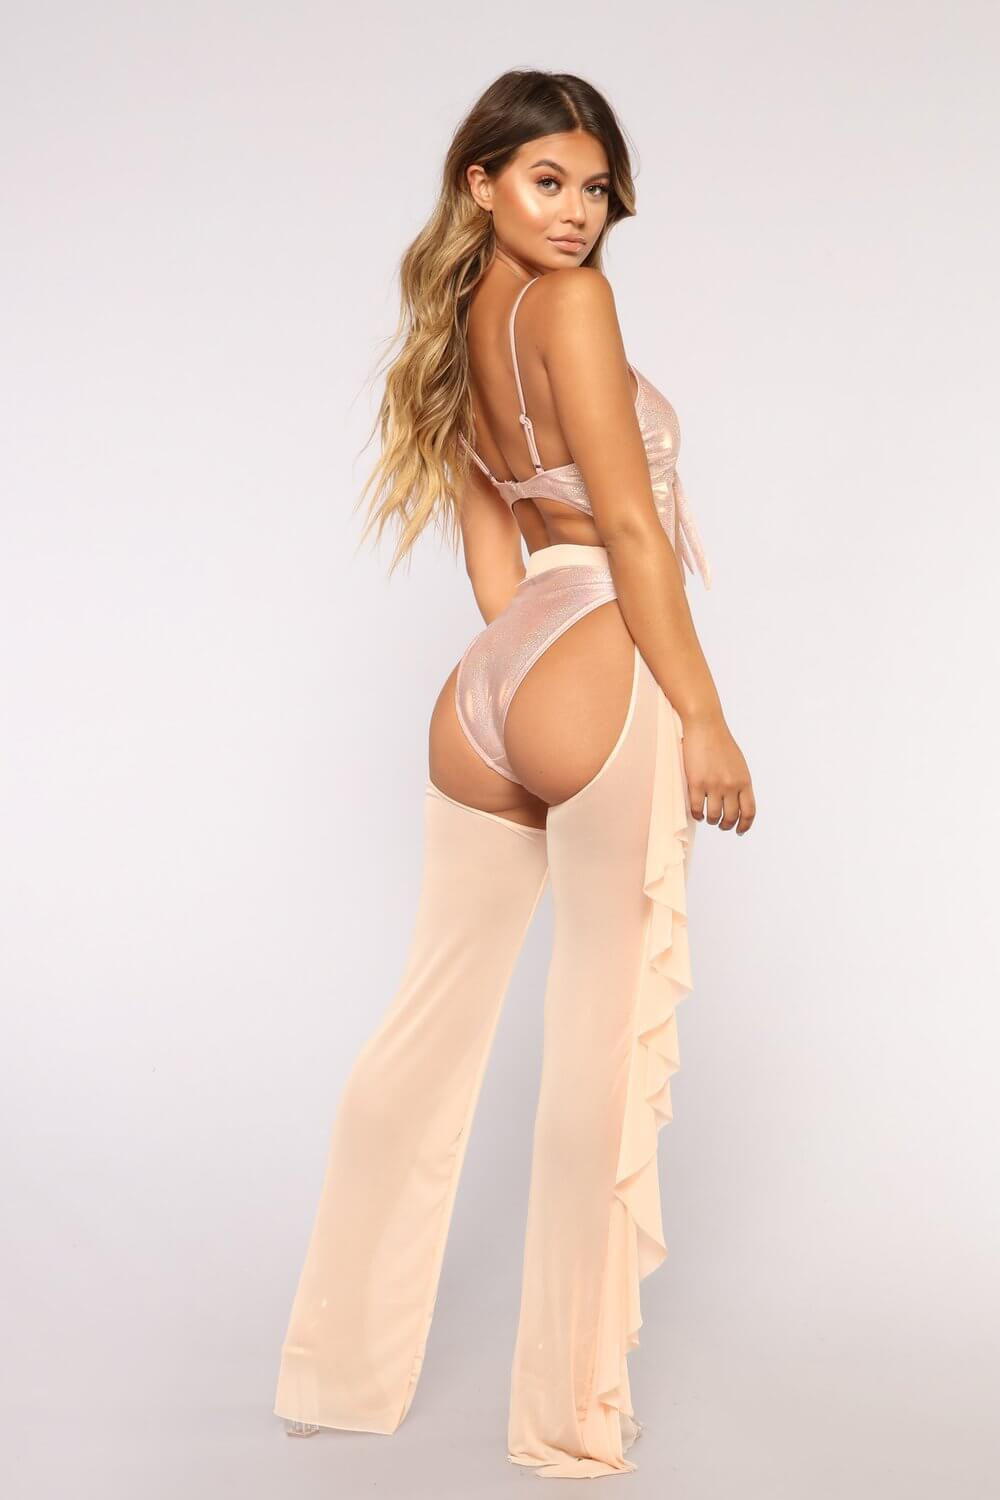 People seem to love the new butt-baring pants that are basically assless chaps